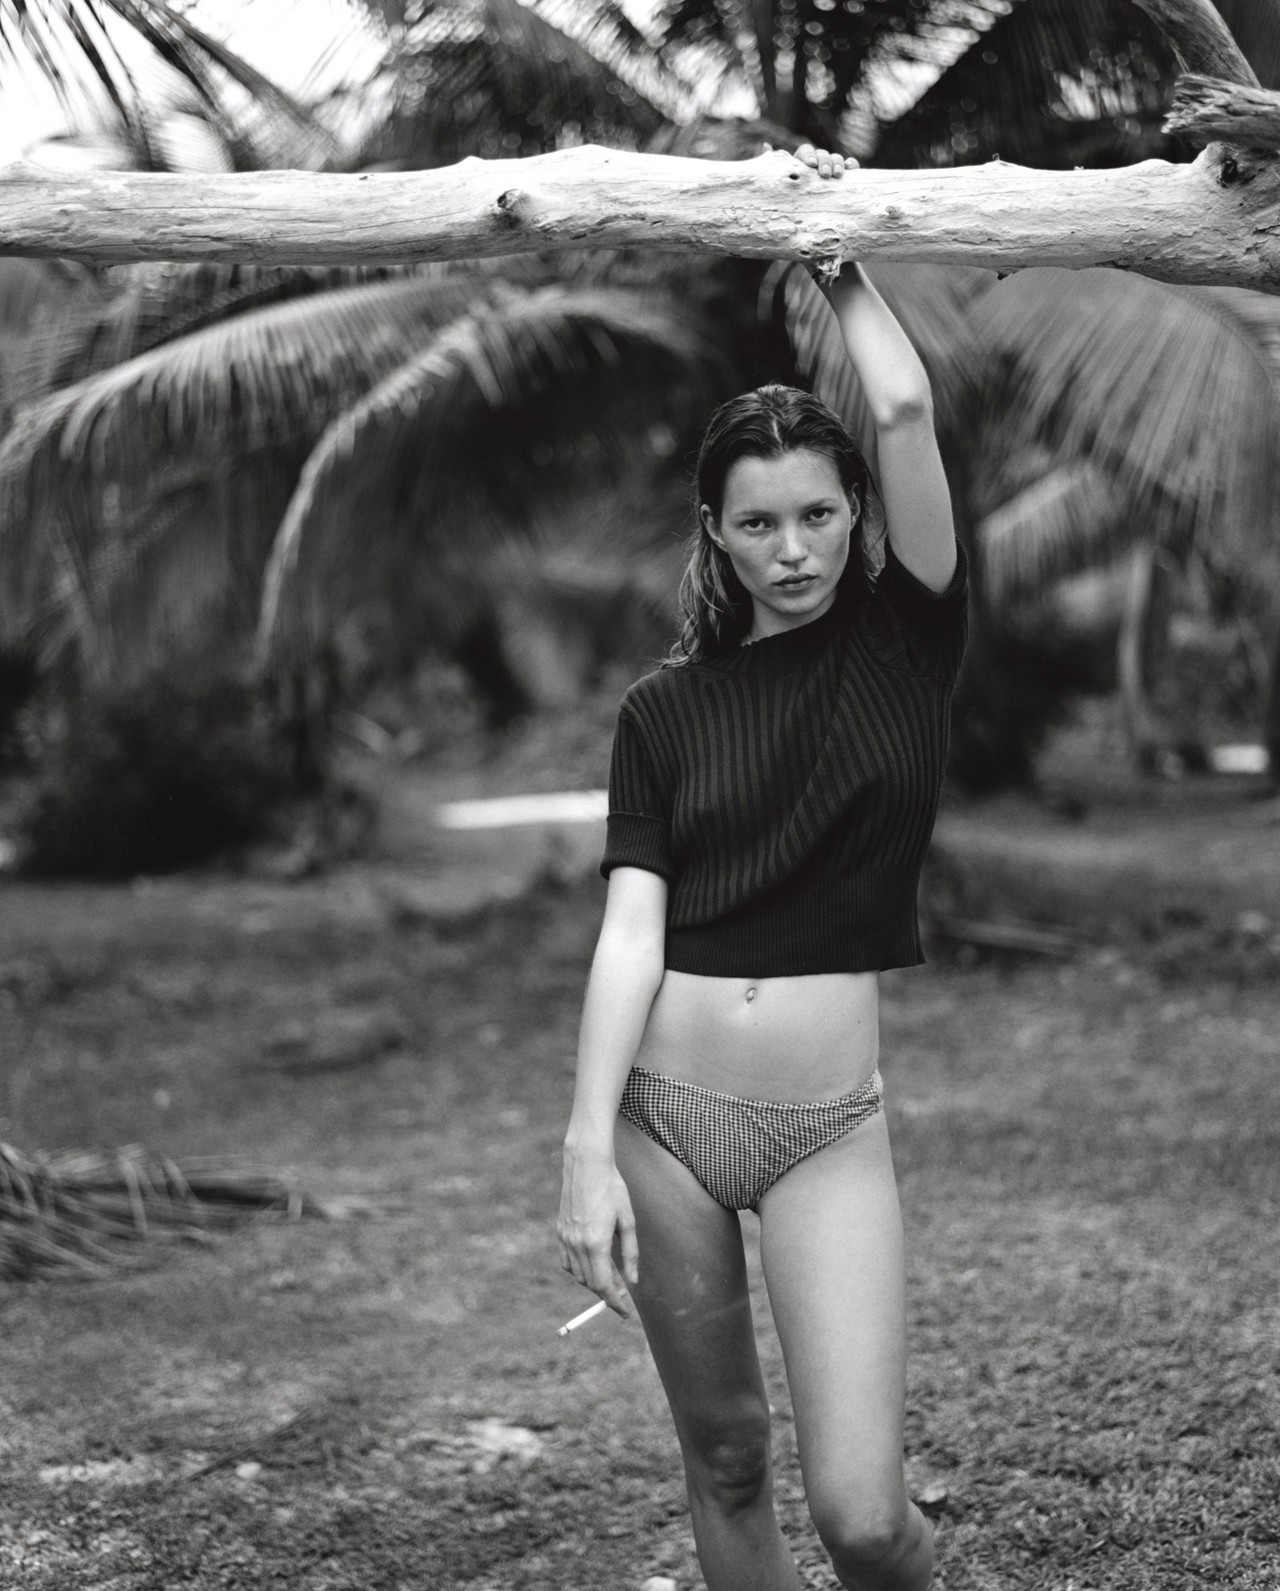 Kate Moss - Dazed & Confused by Juergen Teller (via bohemea) HARD.